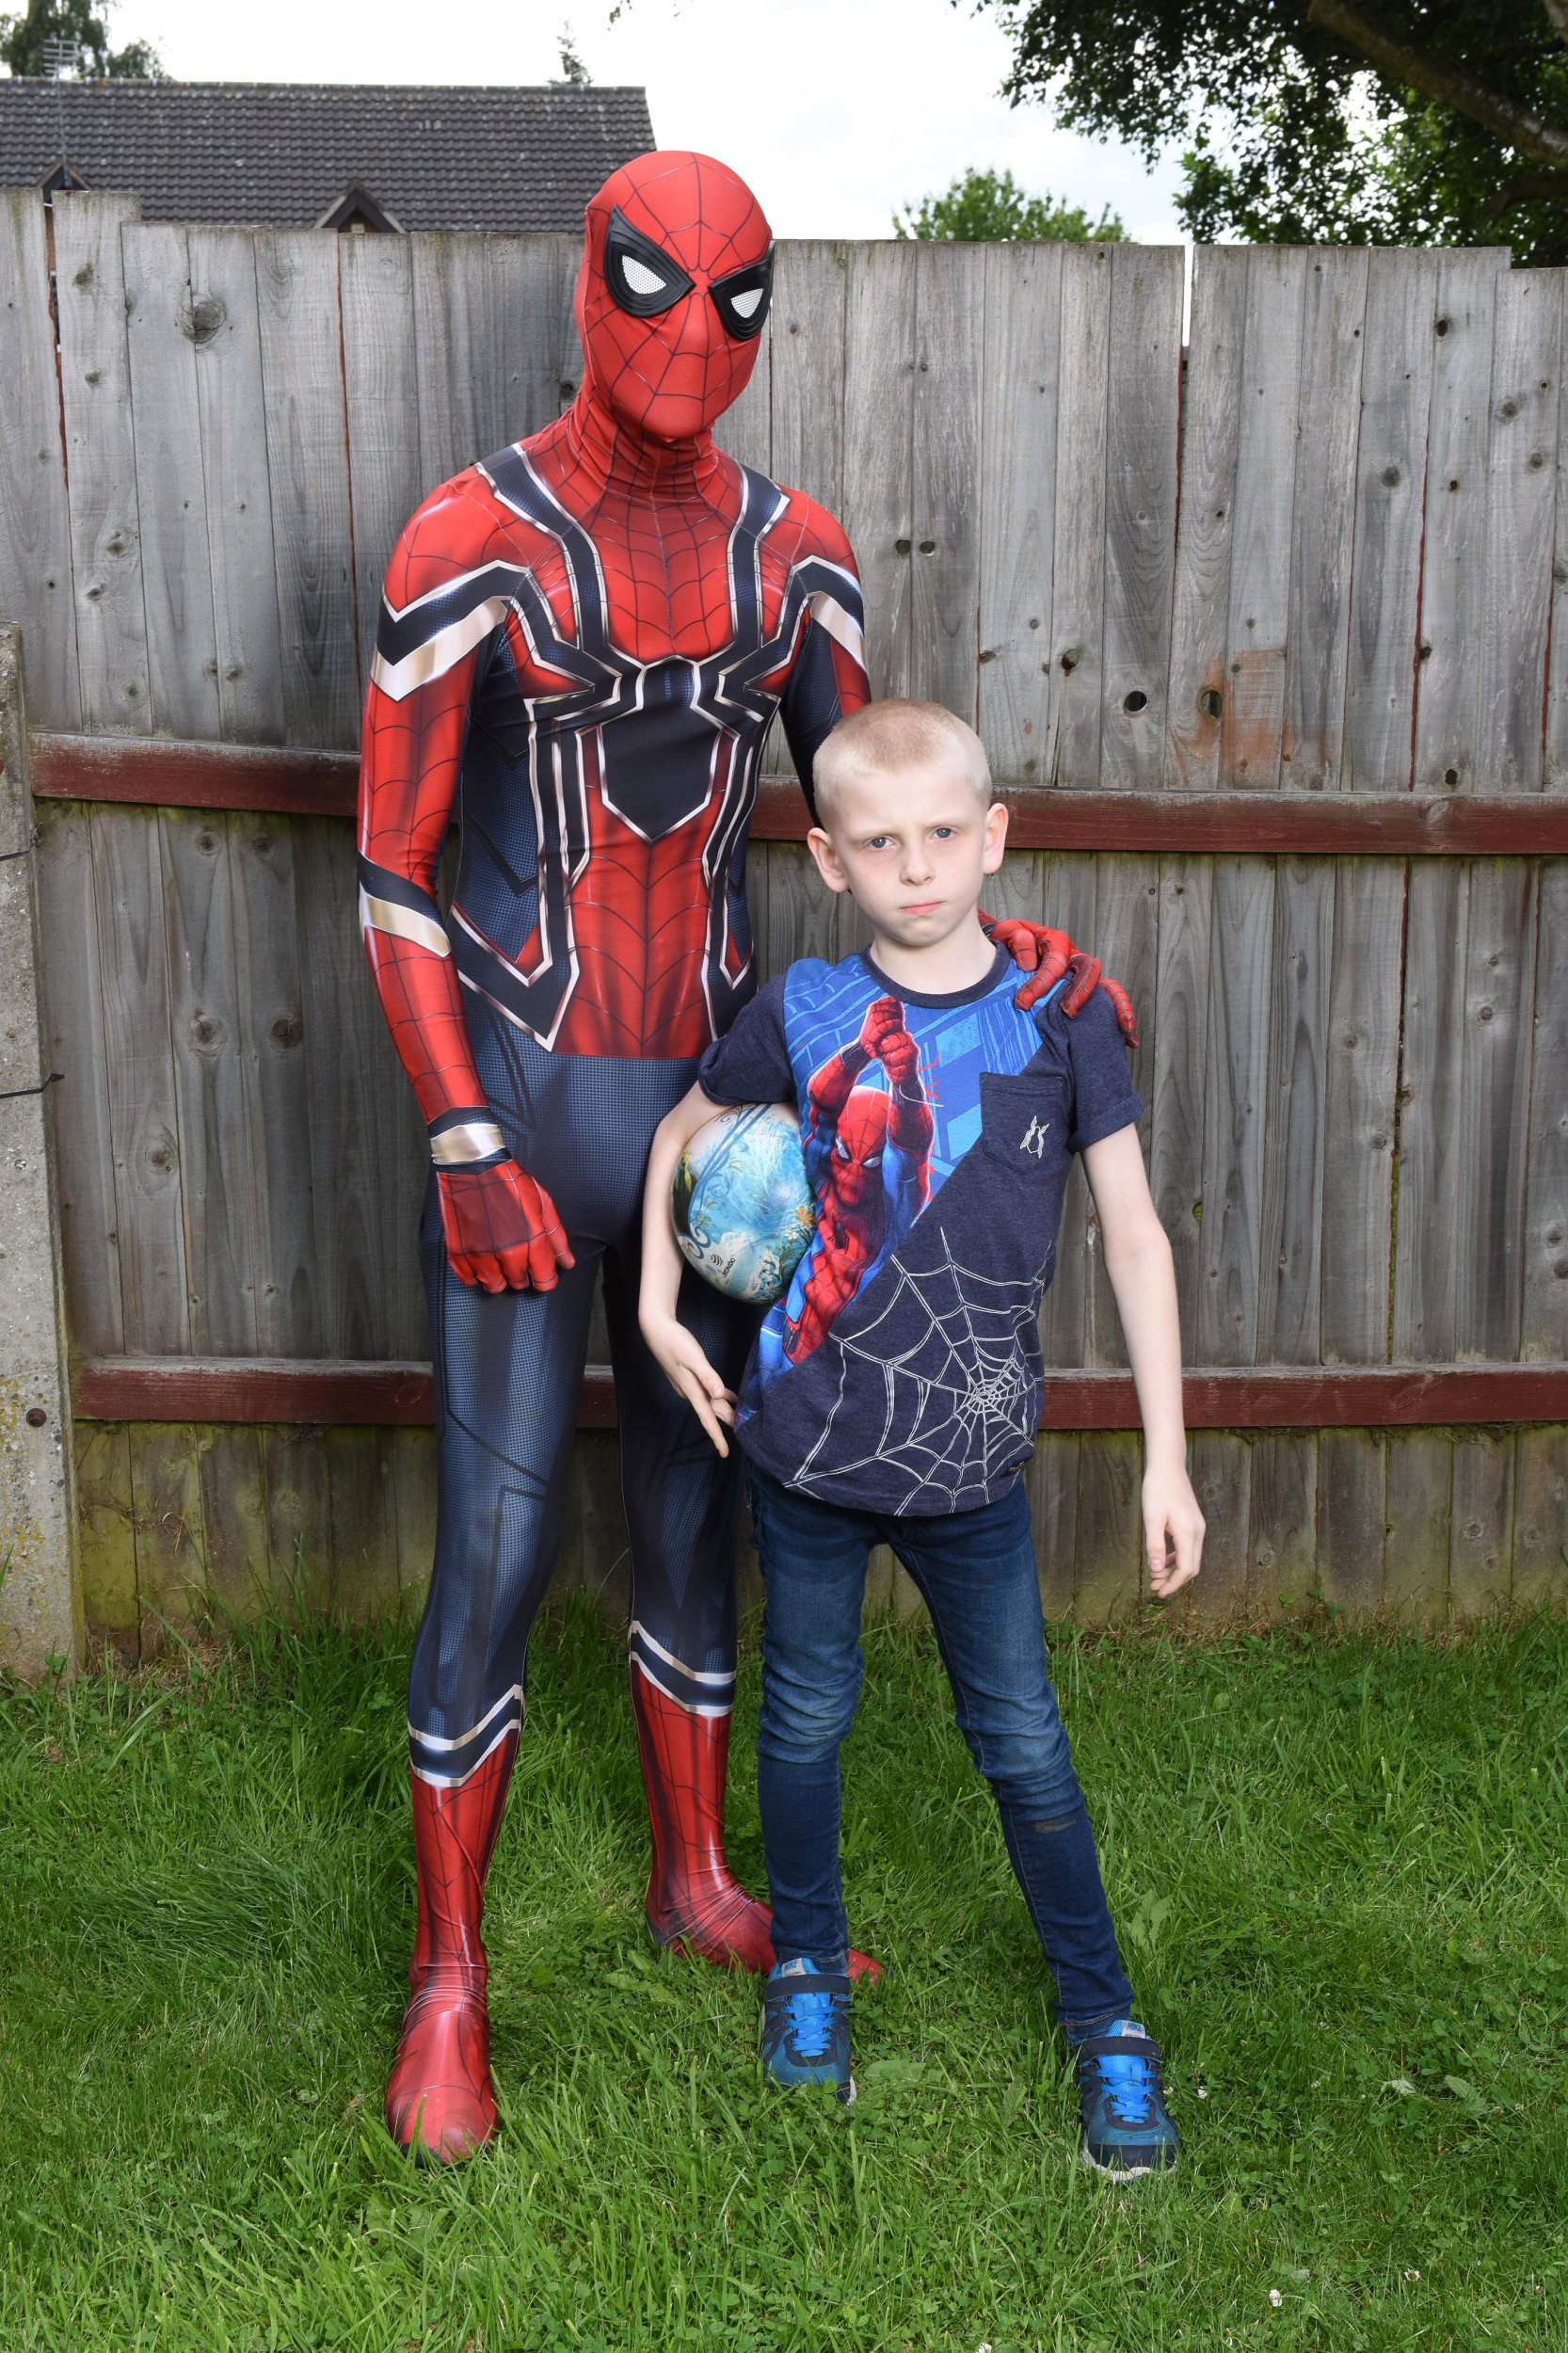 Pics from Caters News - (Reece Grounds, 8, with his Dad Dale Grounds dressed in his Spiderman outfit.) - A single dad from Nottingham has found the perfect way to helps calm his autistic son by transforming himself into SPIDERMAN. Dale Grounds, from Nottingham, has raised son Reece, eight, by himself since Reece was six months old. When Reece was diagnosed with autism in 2015, Dale struggled to find a way to cope with his meltdowns and moods - especially on his own. But he has come up with an ingenious solution - by dressing up as Reeces favourite superhero, Spiderman. Now, when Reece gets stressed, Spider-dad will appear to help him with his homework, have a kickabout in the back garden or read him a bed-time story. His unusual parenting method has been such a hit that hes even started visiting sick kids at his local hospital dressed as the comic book hero - as well as being inundated with requests to appear at Reeces friends birthday parties.- SEE CATERS COPY